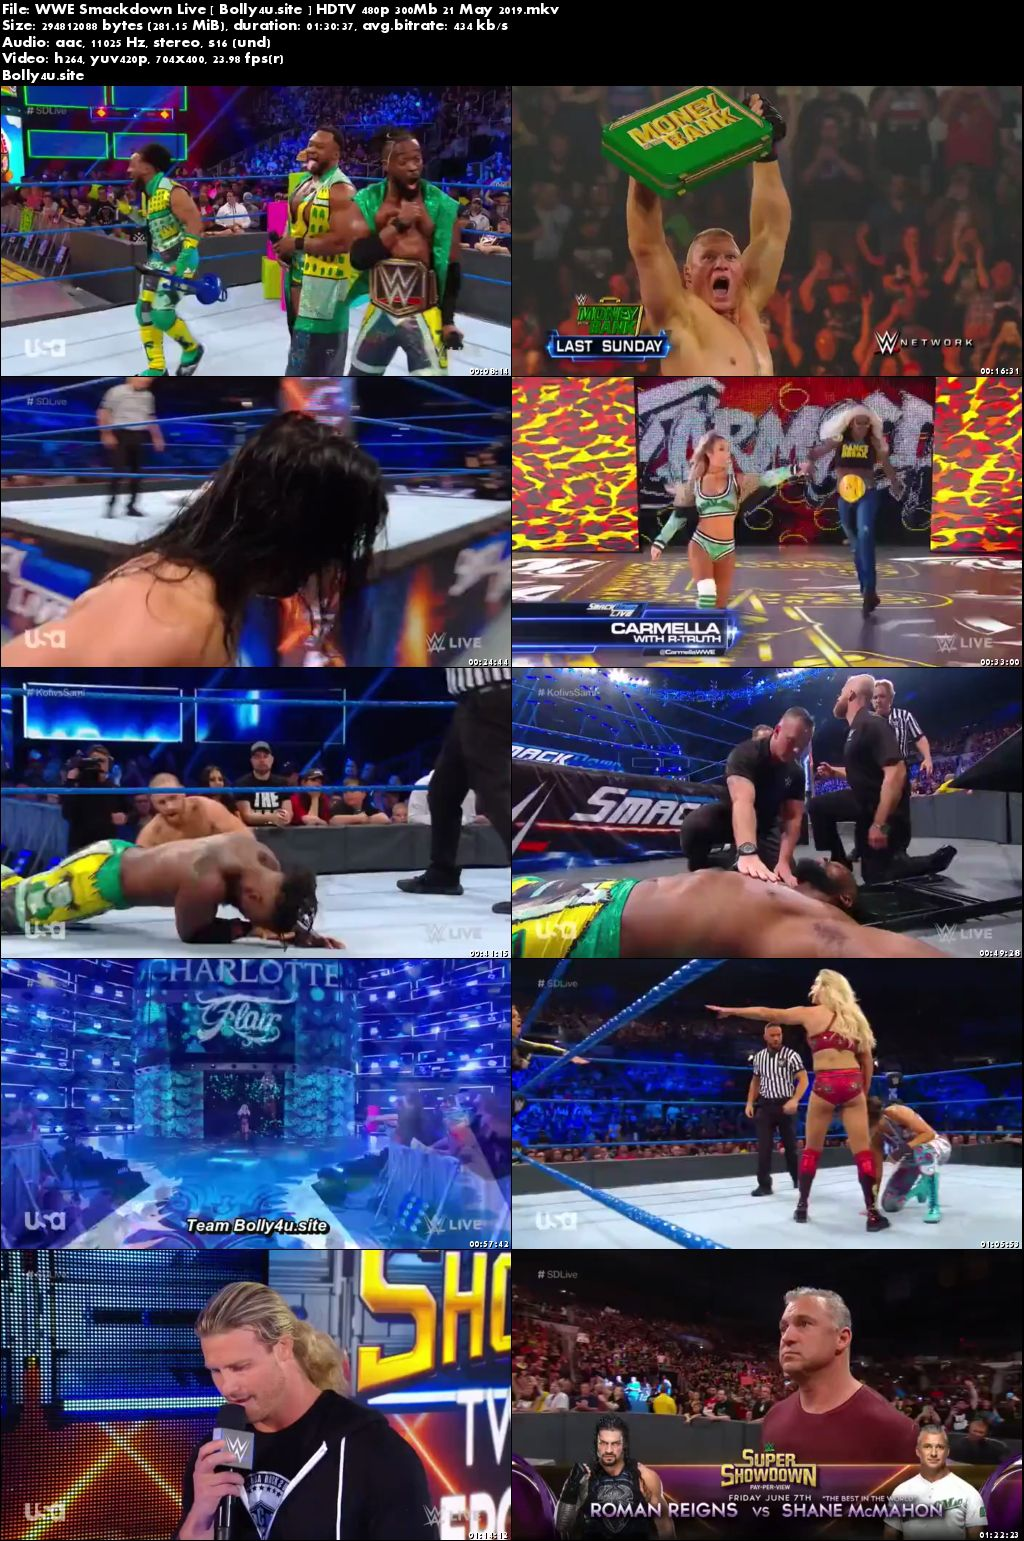 WWE Smackdown Live HDTV 480p 300Mb 21 May 2019 Download